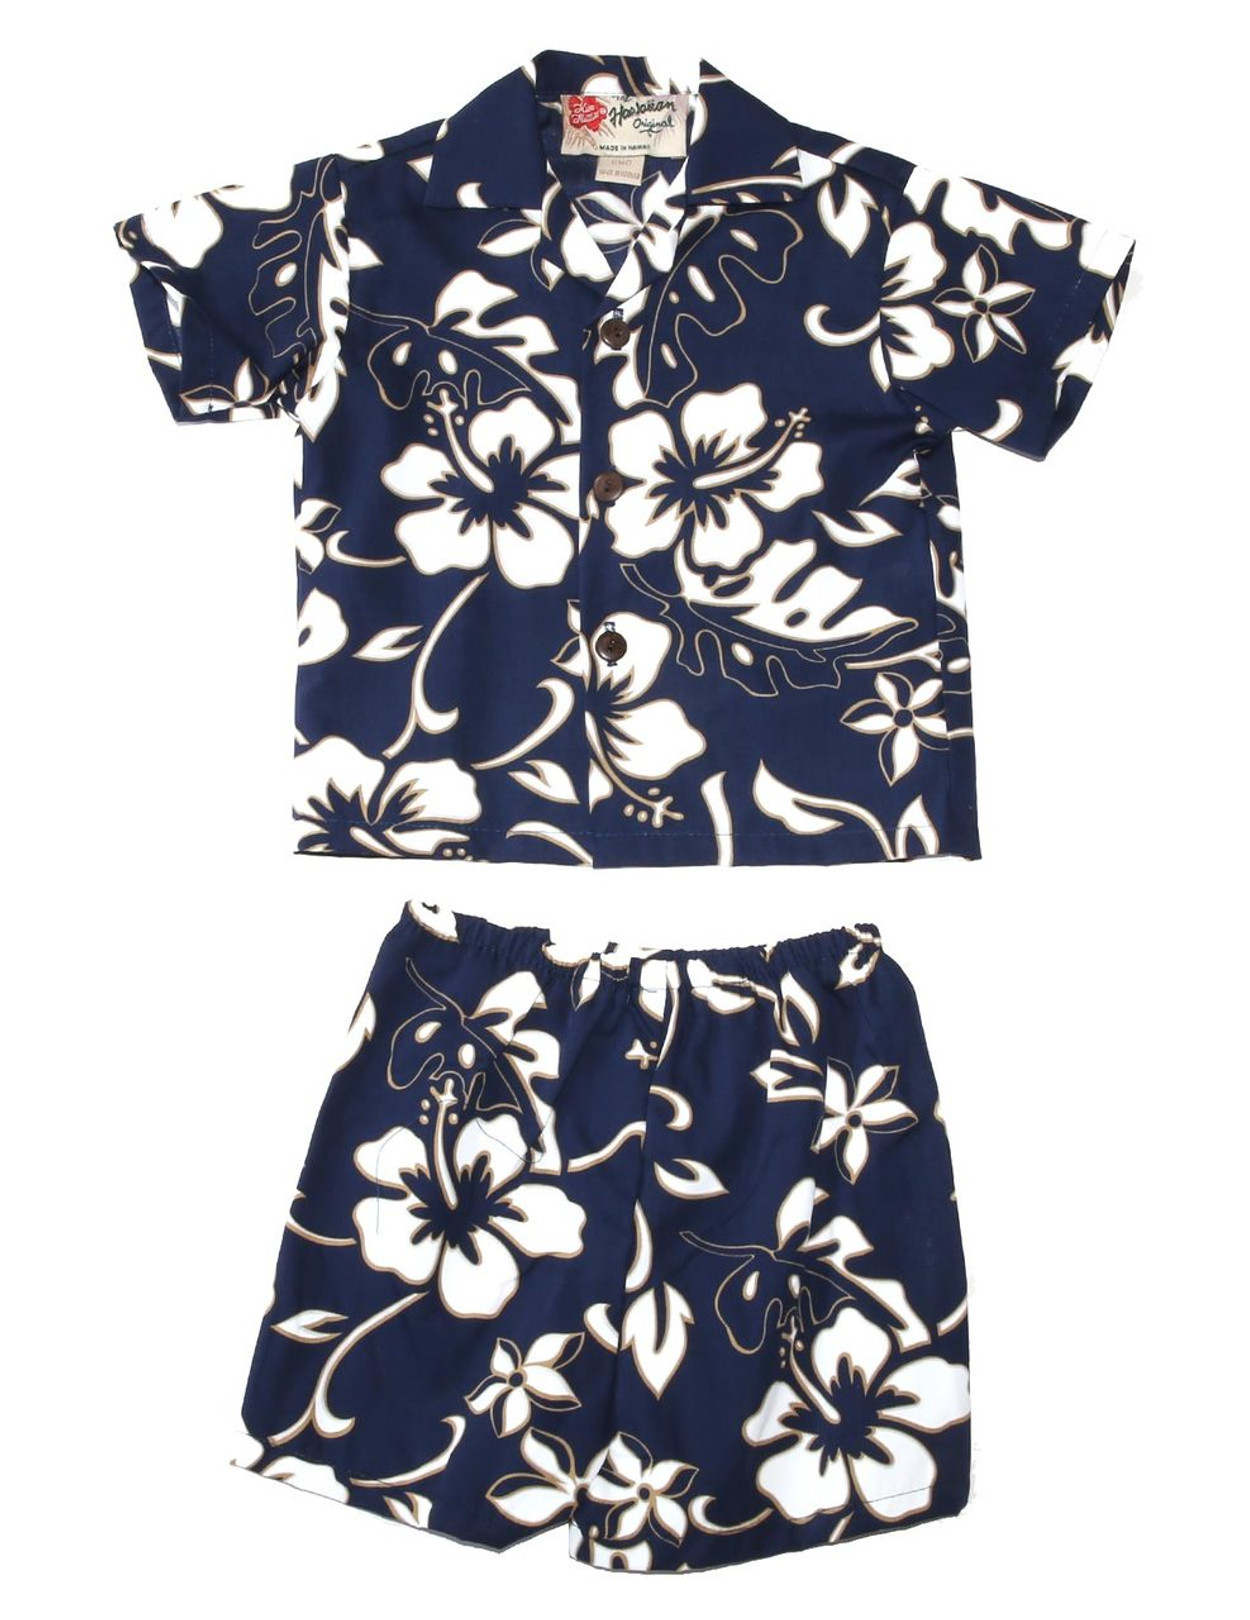 ff91ad02 Classic Hibiscus Pareo 2 Piece Boy's Cotton Cabana Set 2 Piece Set - Shirt  and Shorts